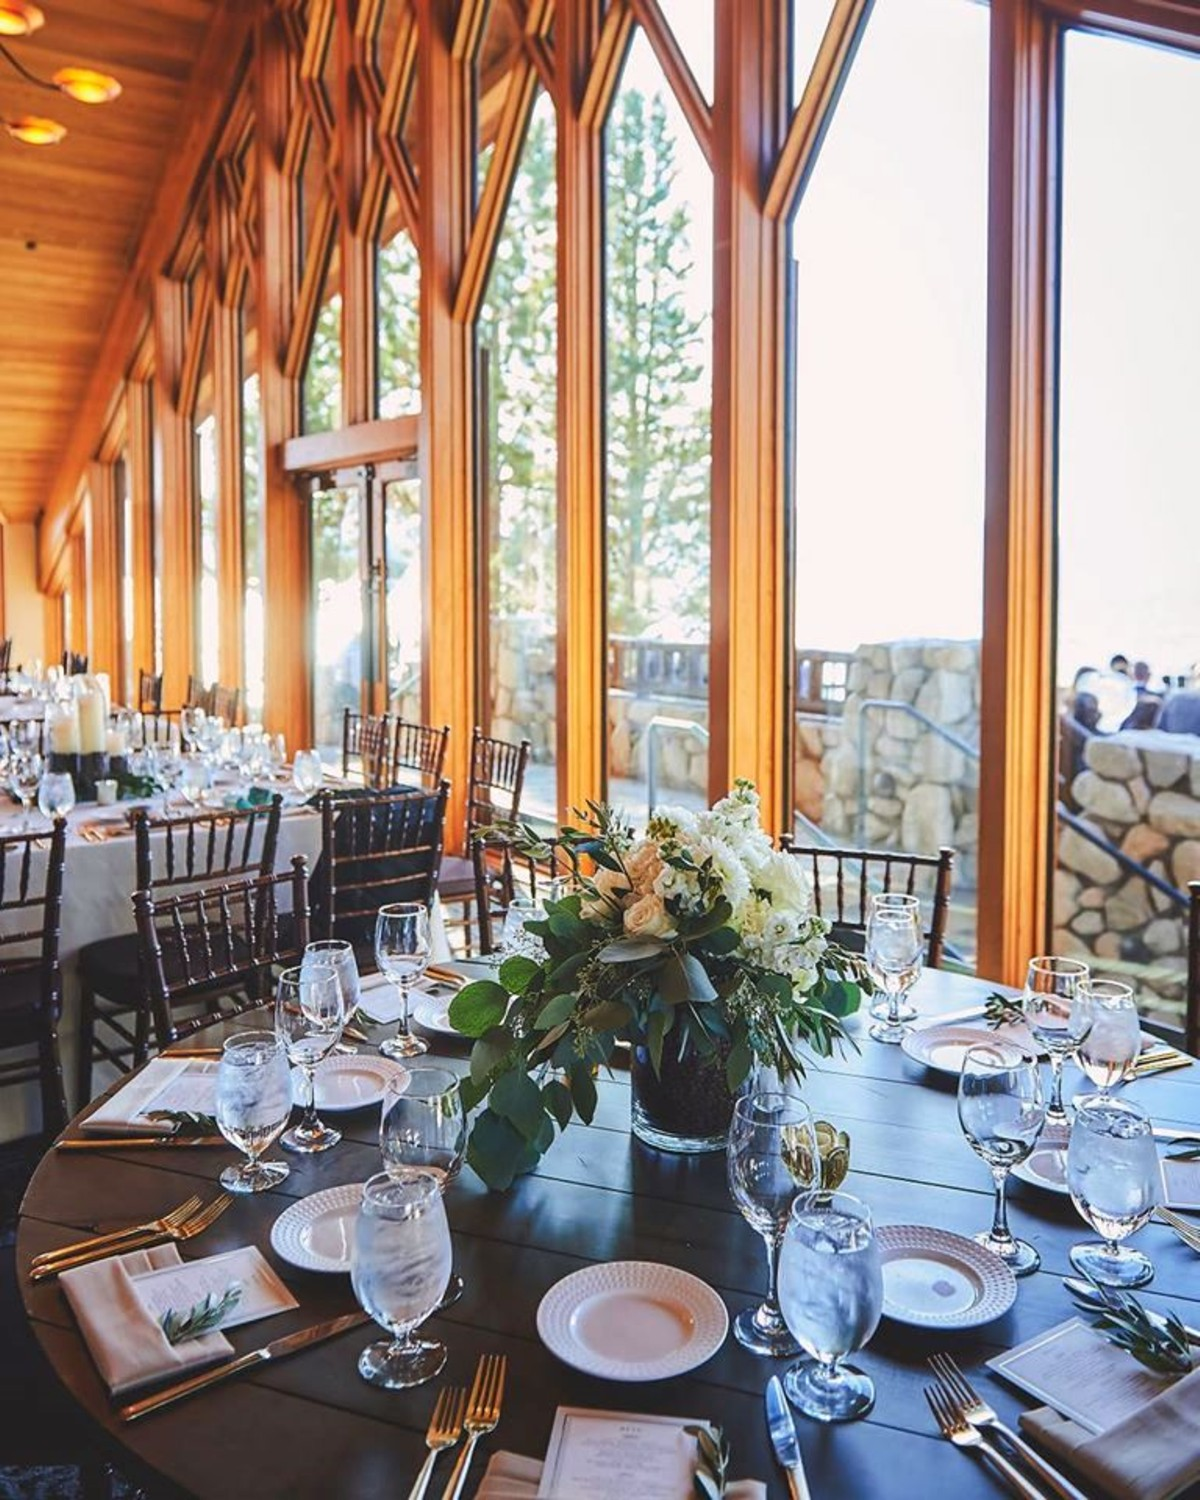 Beau & Arrow Event Co. - Lake Tahoe Wedding Planner - rustic table with view